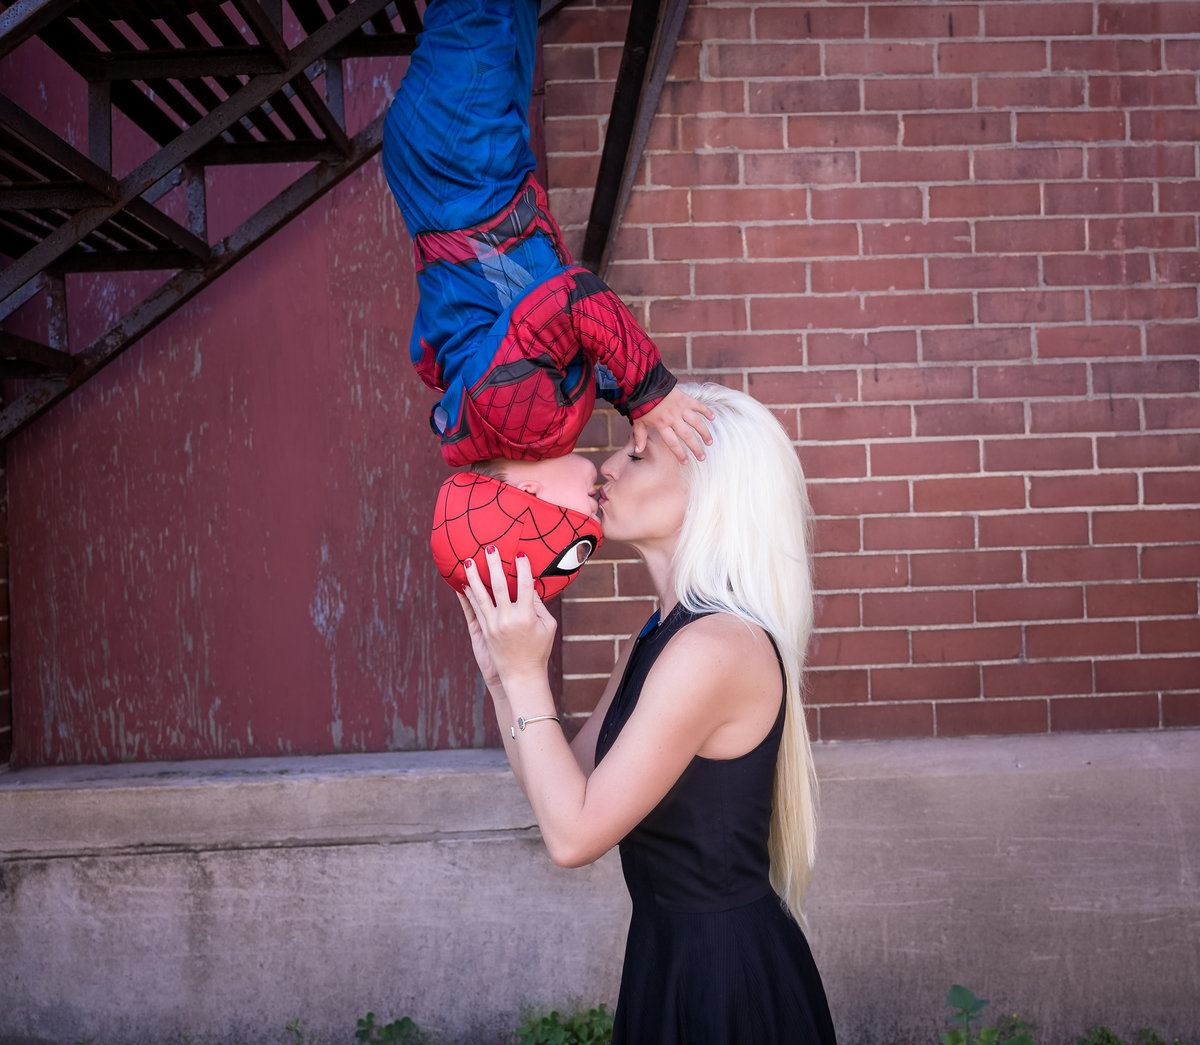 Spiderman-1071-Edit-5